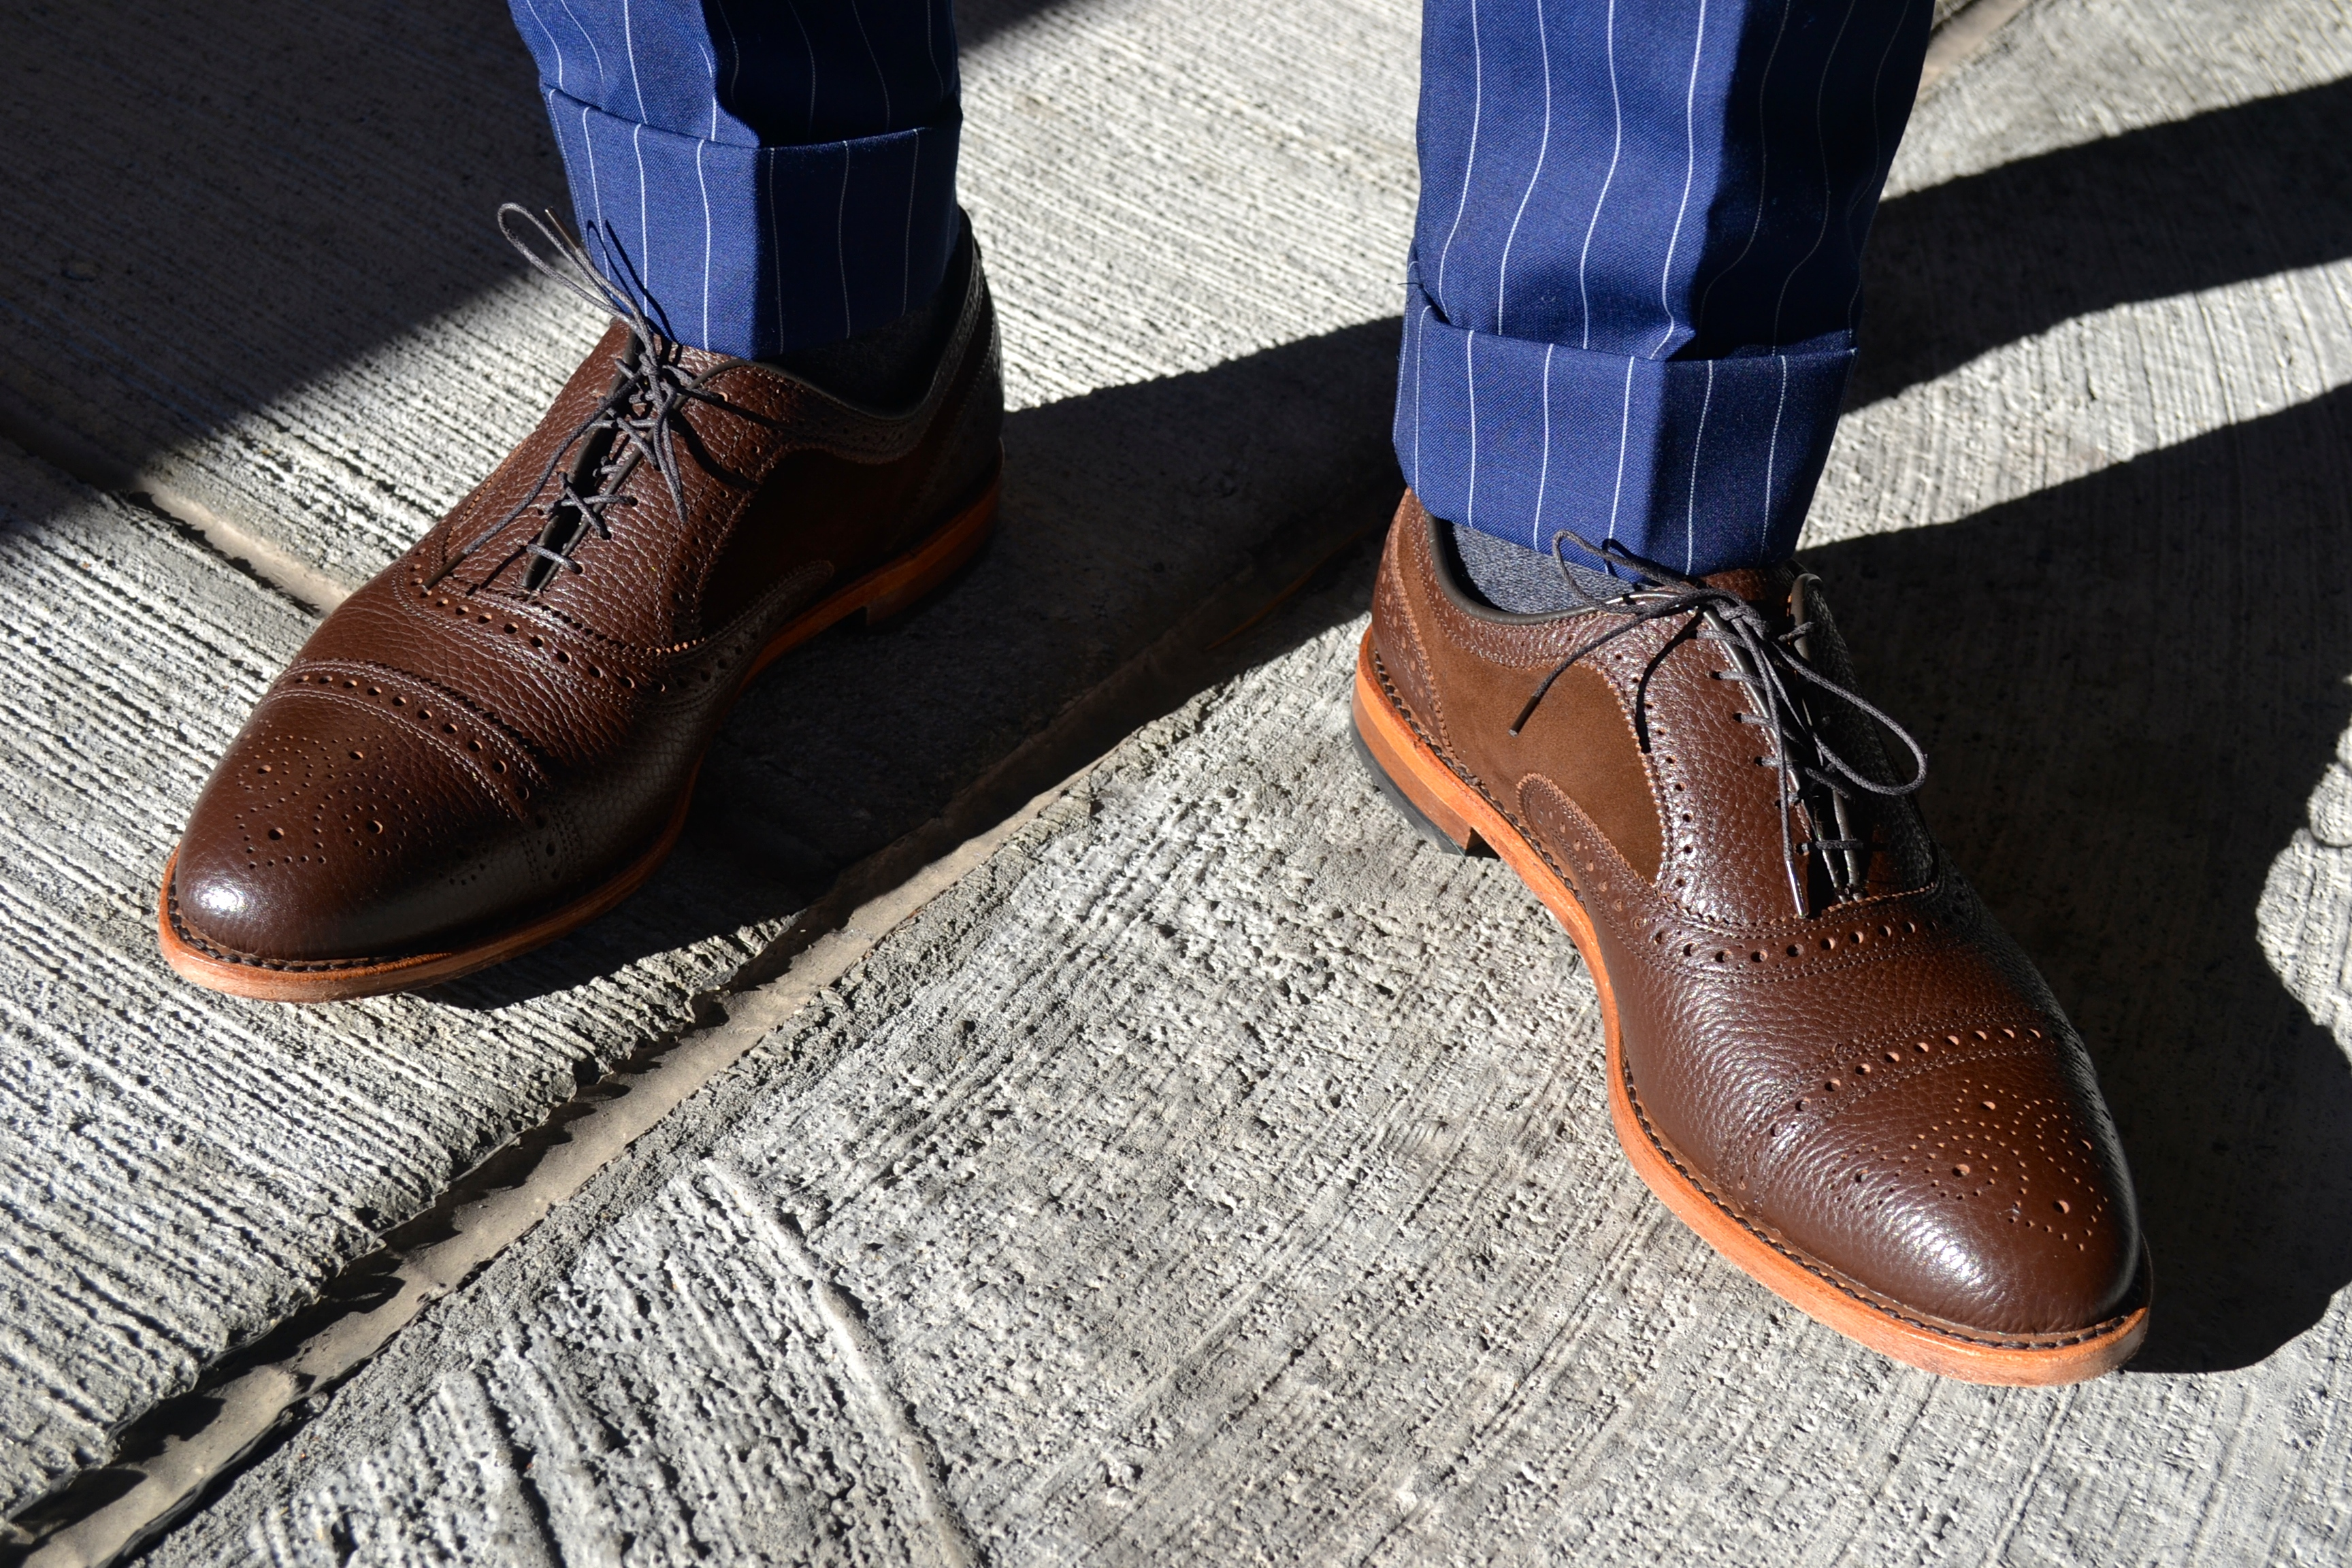 Men's Style Pro in Imparali Edinburgh Custom Chalk Stripe Suit and Allen Edmonds Custom Shoes